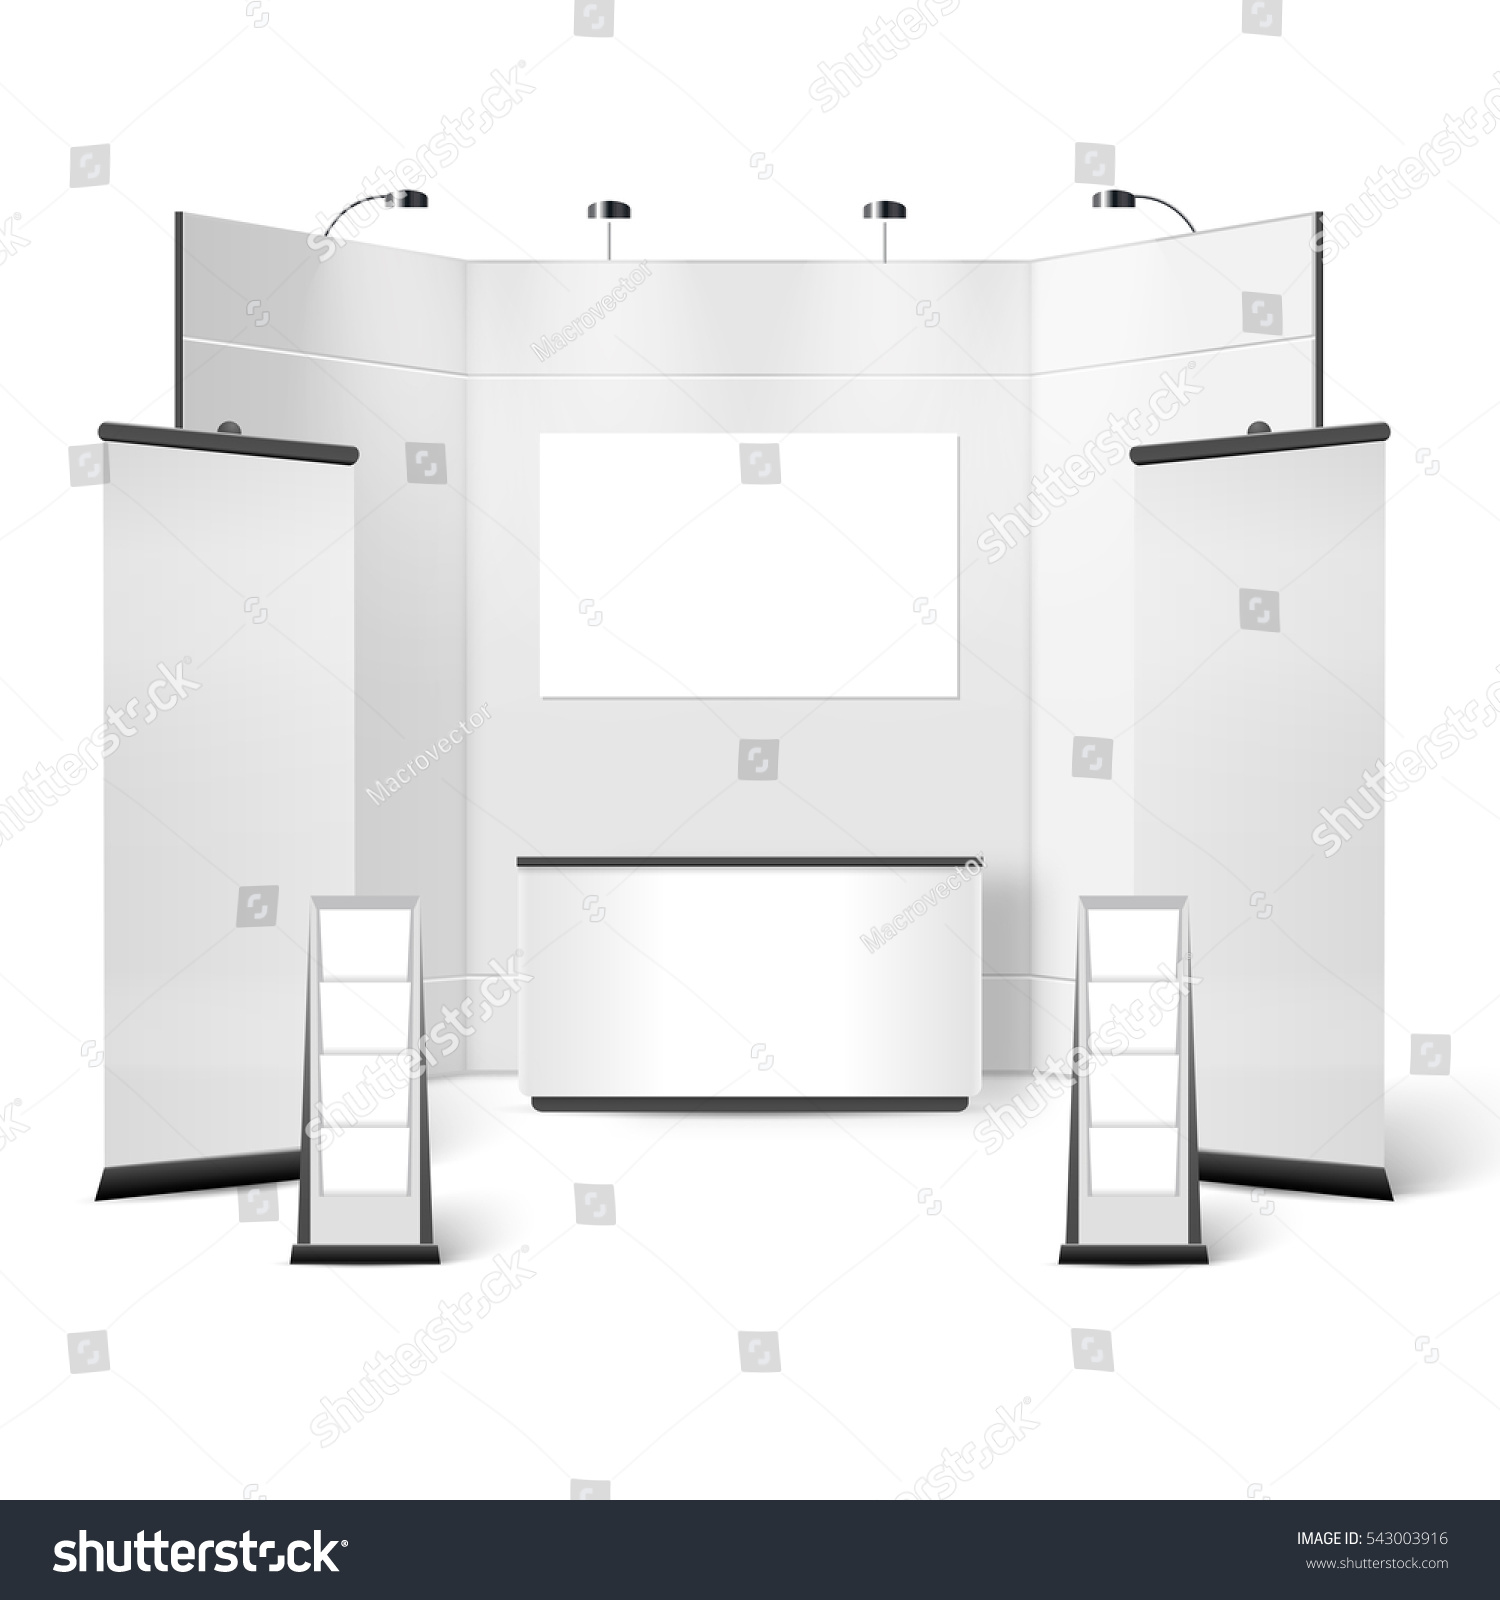 Exhibition Stand Drawing : Royalty free stock illustration of exhibition stand blank design